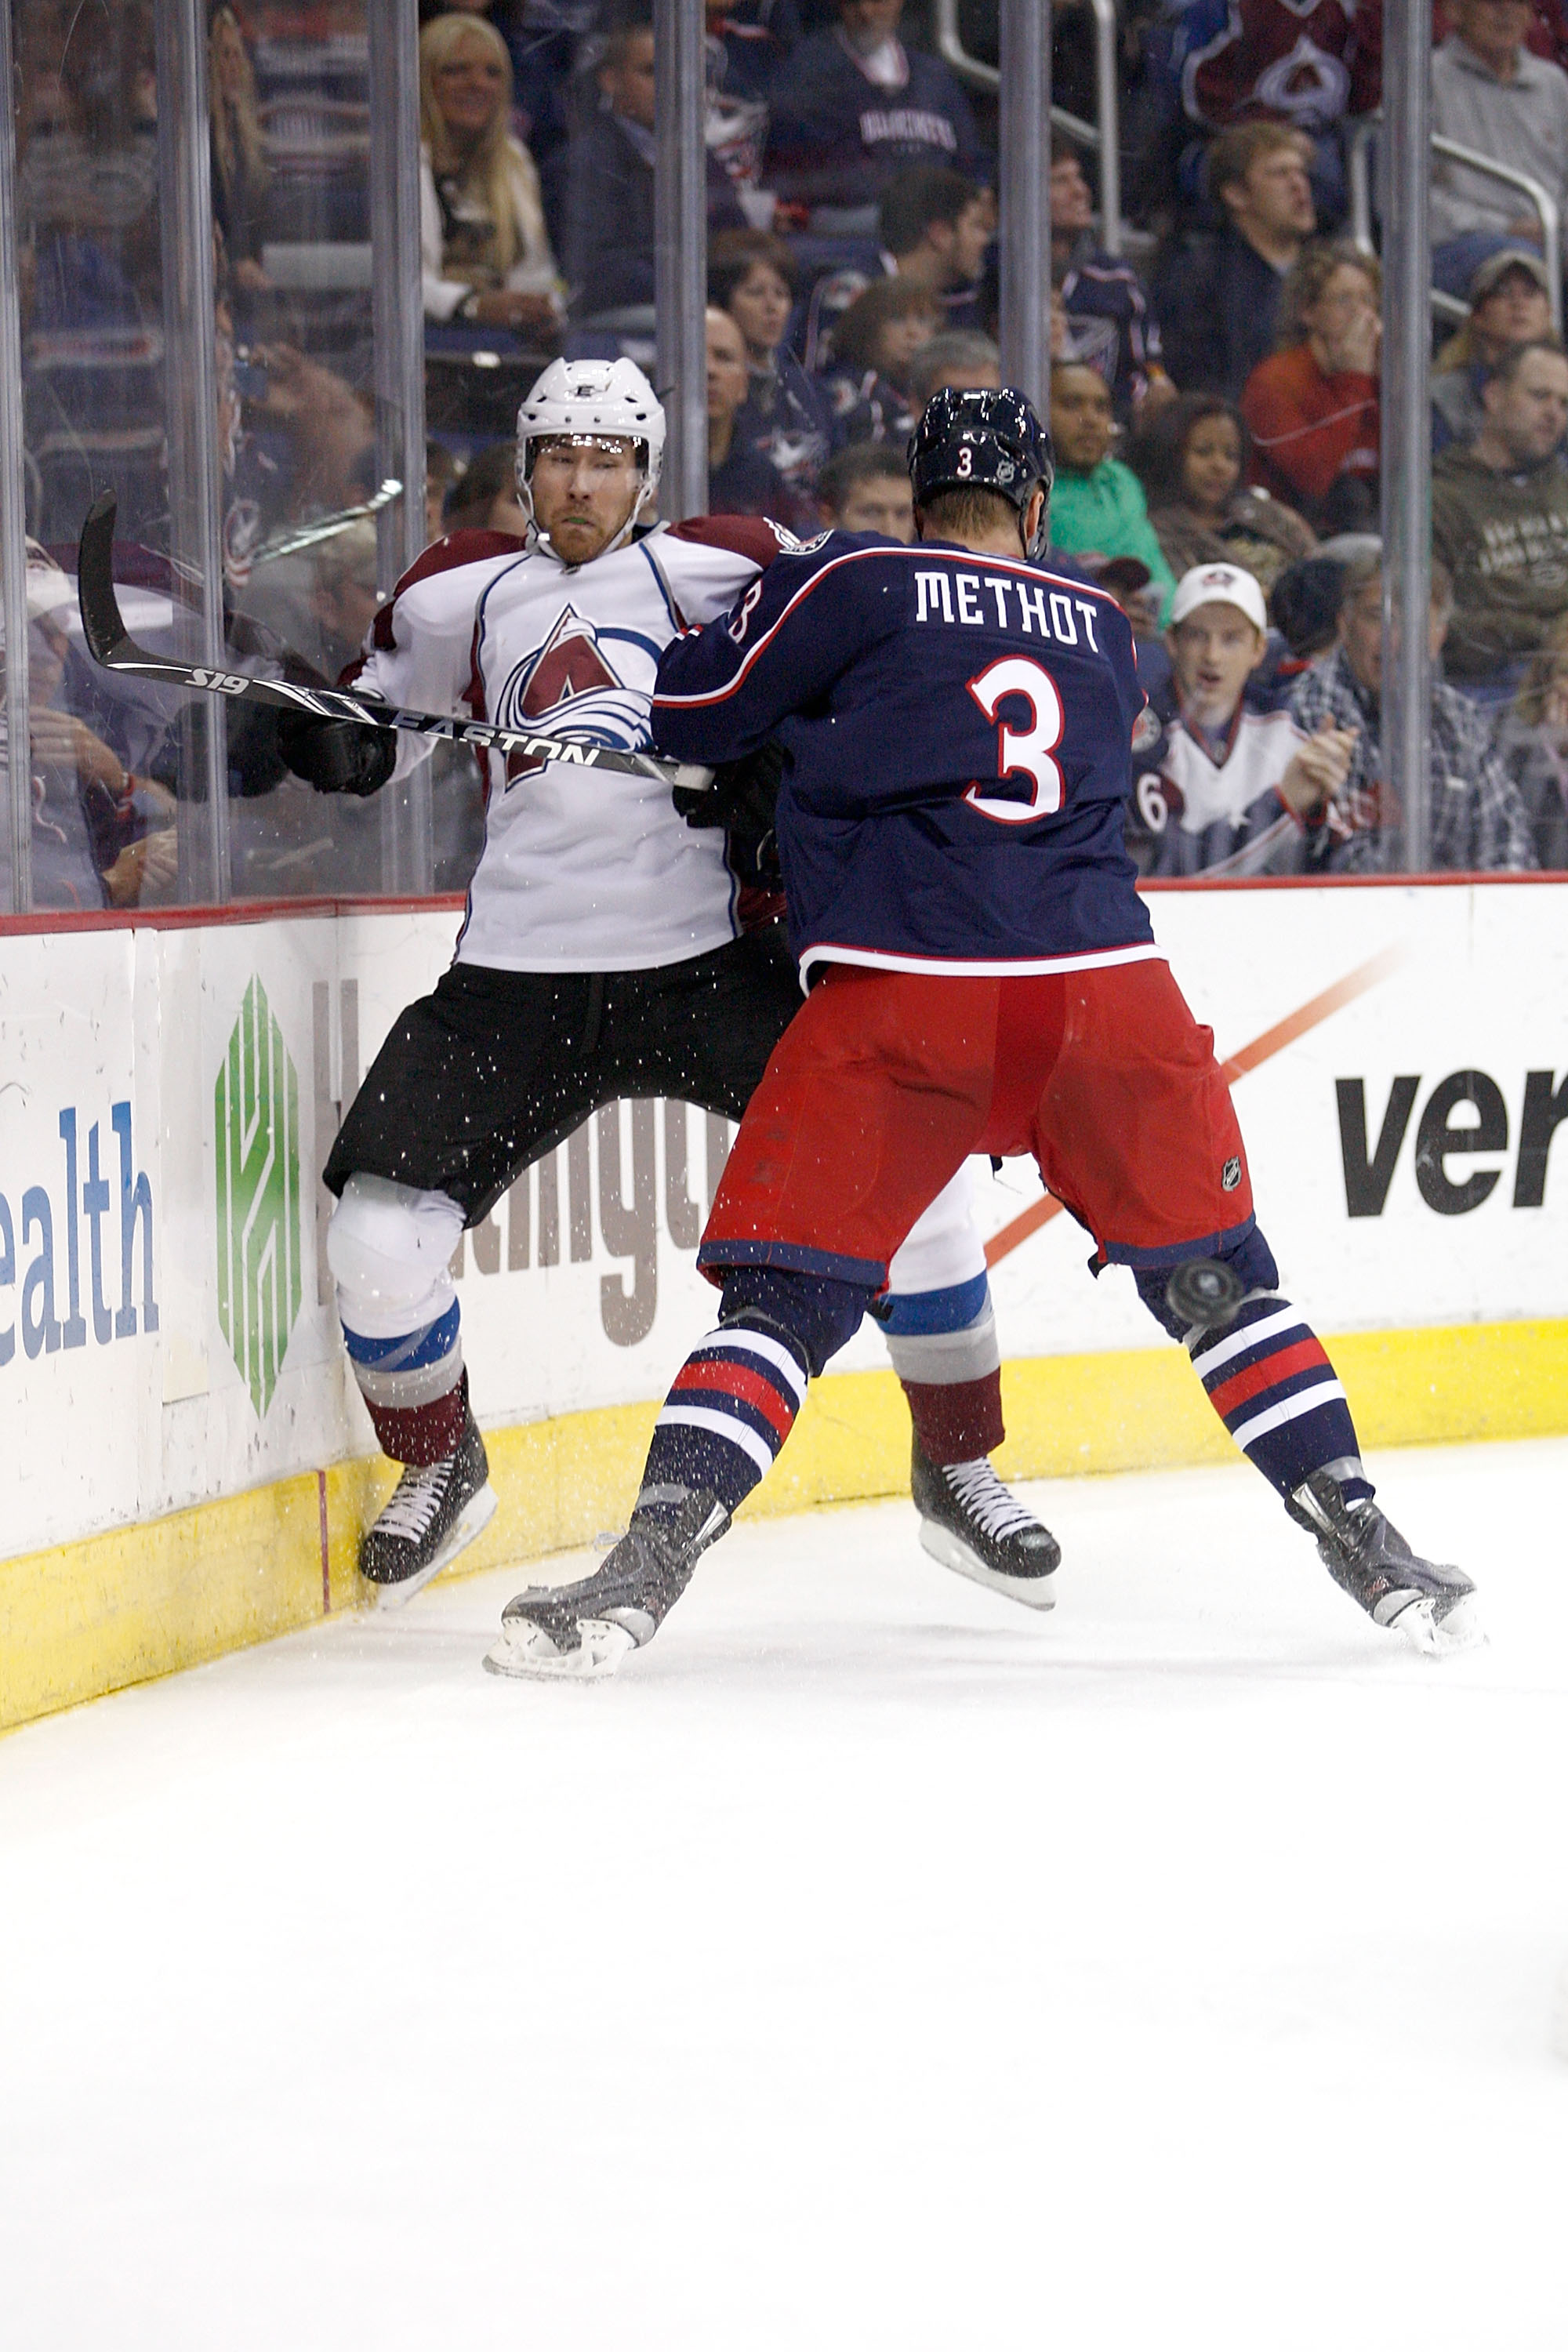 COLUMBUS,OH - NOVEMBER 12:  Marc Methot #3 of the Columbus Blue Jackets checks David Jones #54 of the Colorado Avalanche on November 12, 2010 at Nationwide Arena in Columbus, Ohio.  (Photo by John Grieshop/Getty Images)